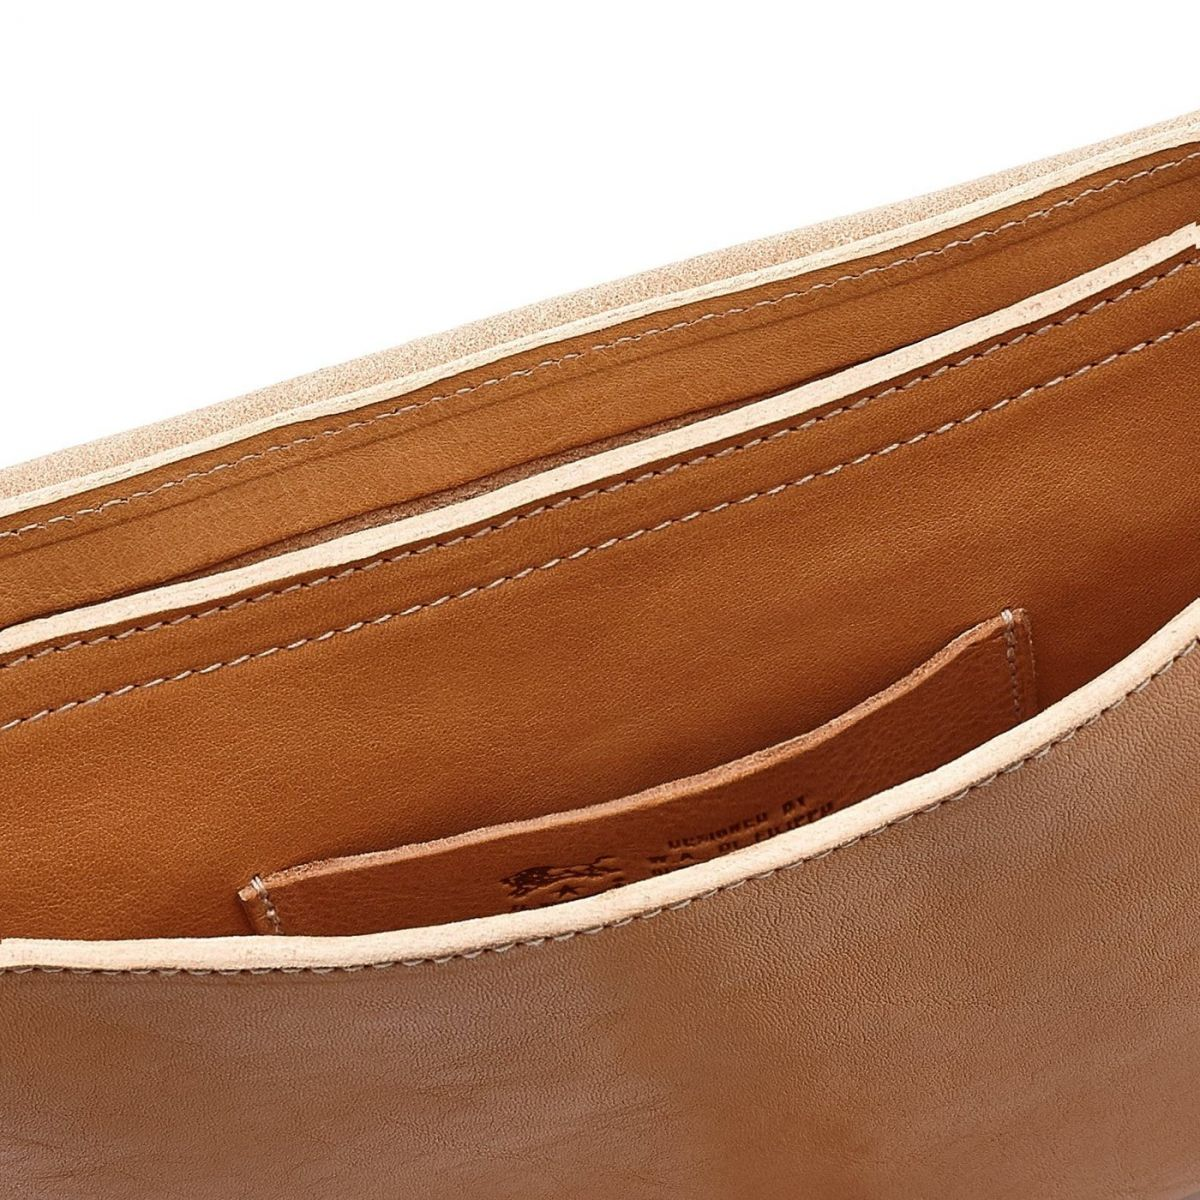 Women's Crossbody Bag in Cowhide Double Leather BCR027 color Natural | Details